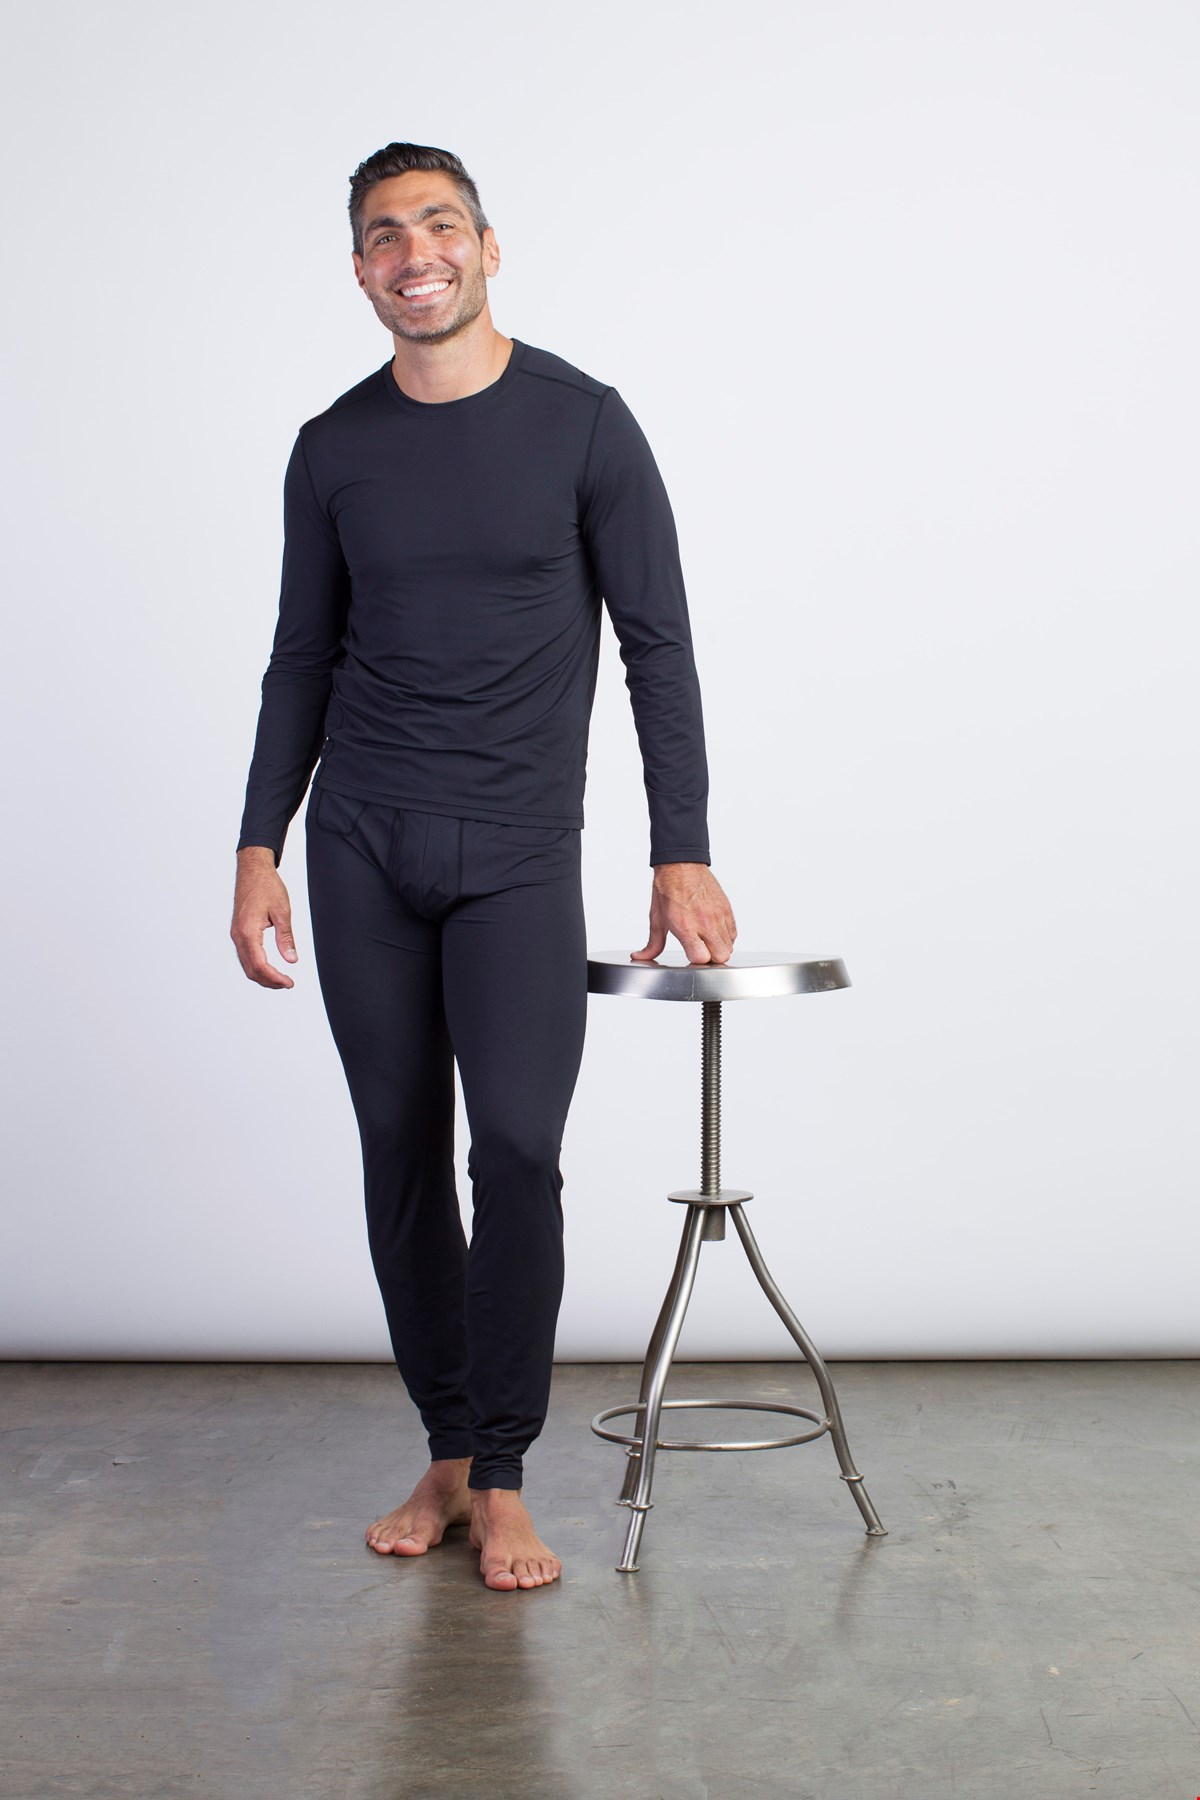 ExOfficio® unveils new base layer collection based on their award-winning underwear collection